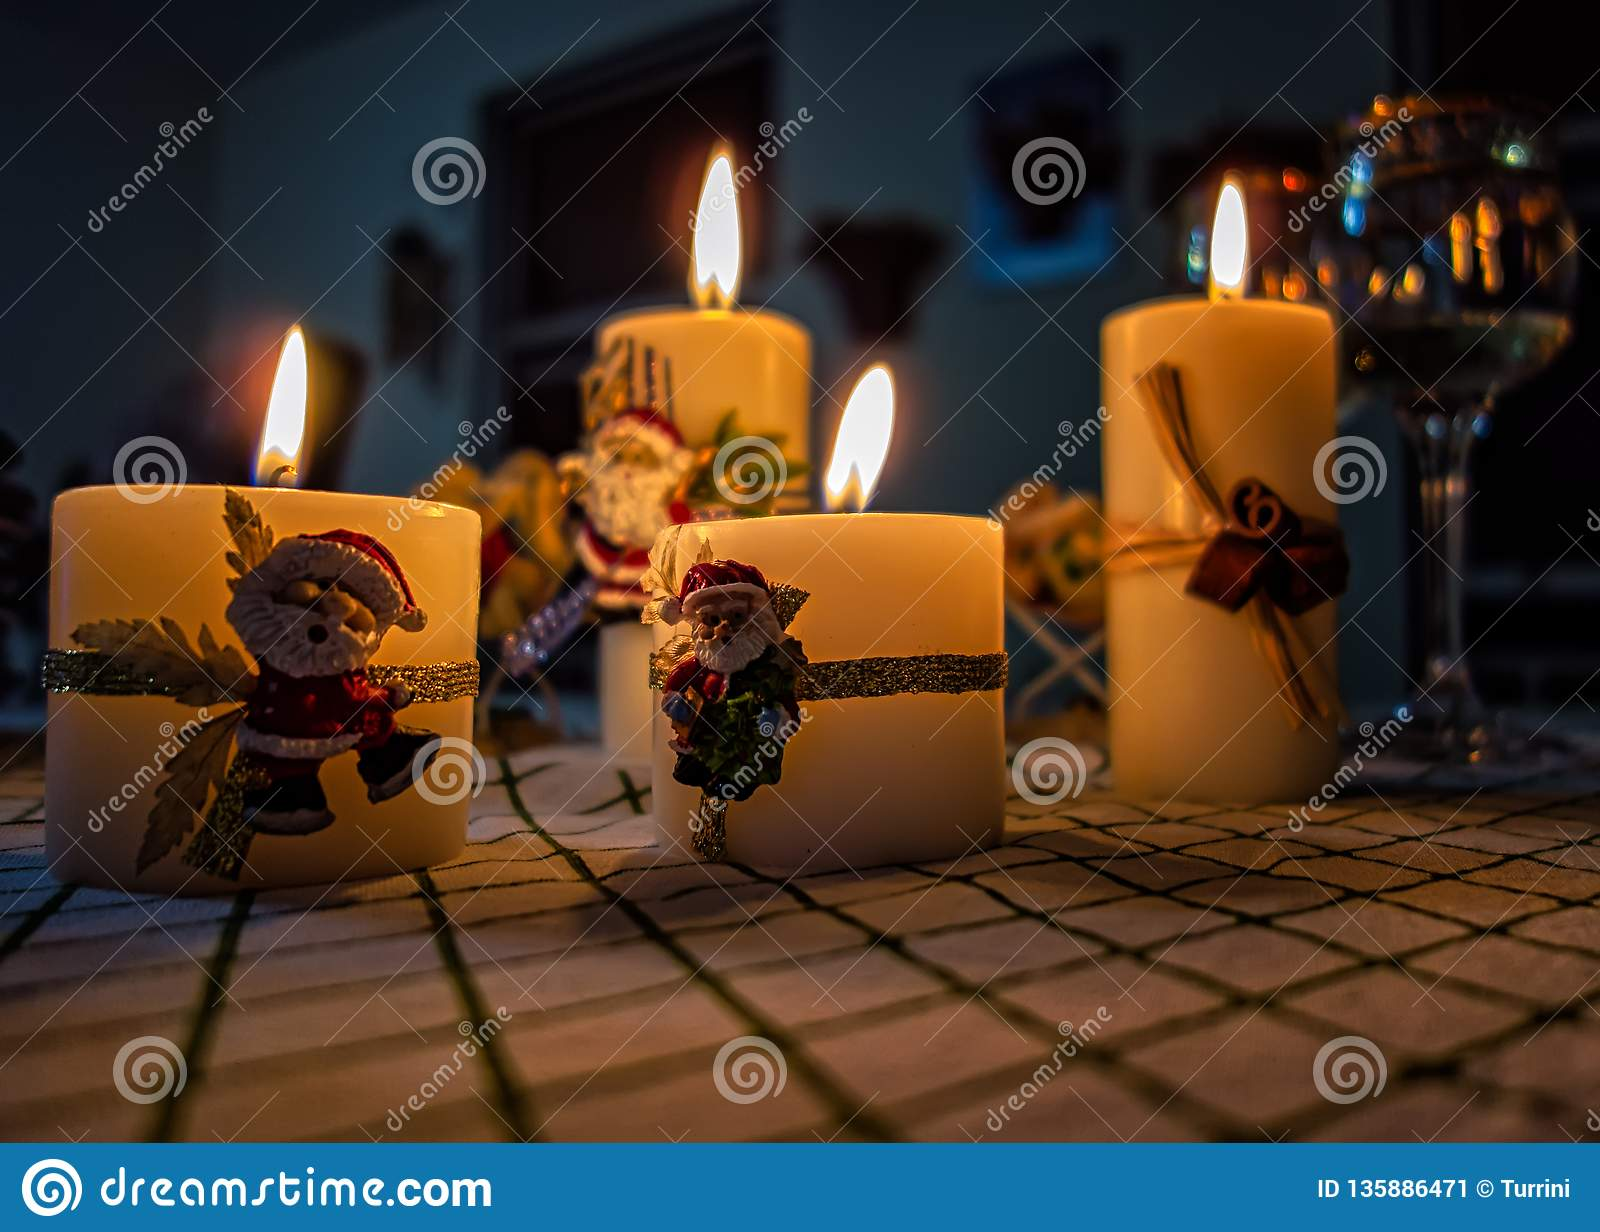 Christmas Candles With Santa Ornament And White Wine Glass Bowls On The Side Stock Image Image Of Bowls December 135886471